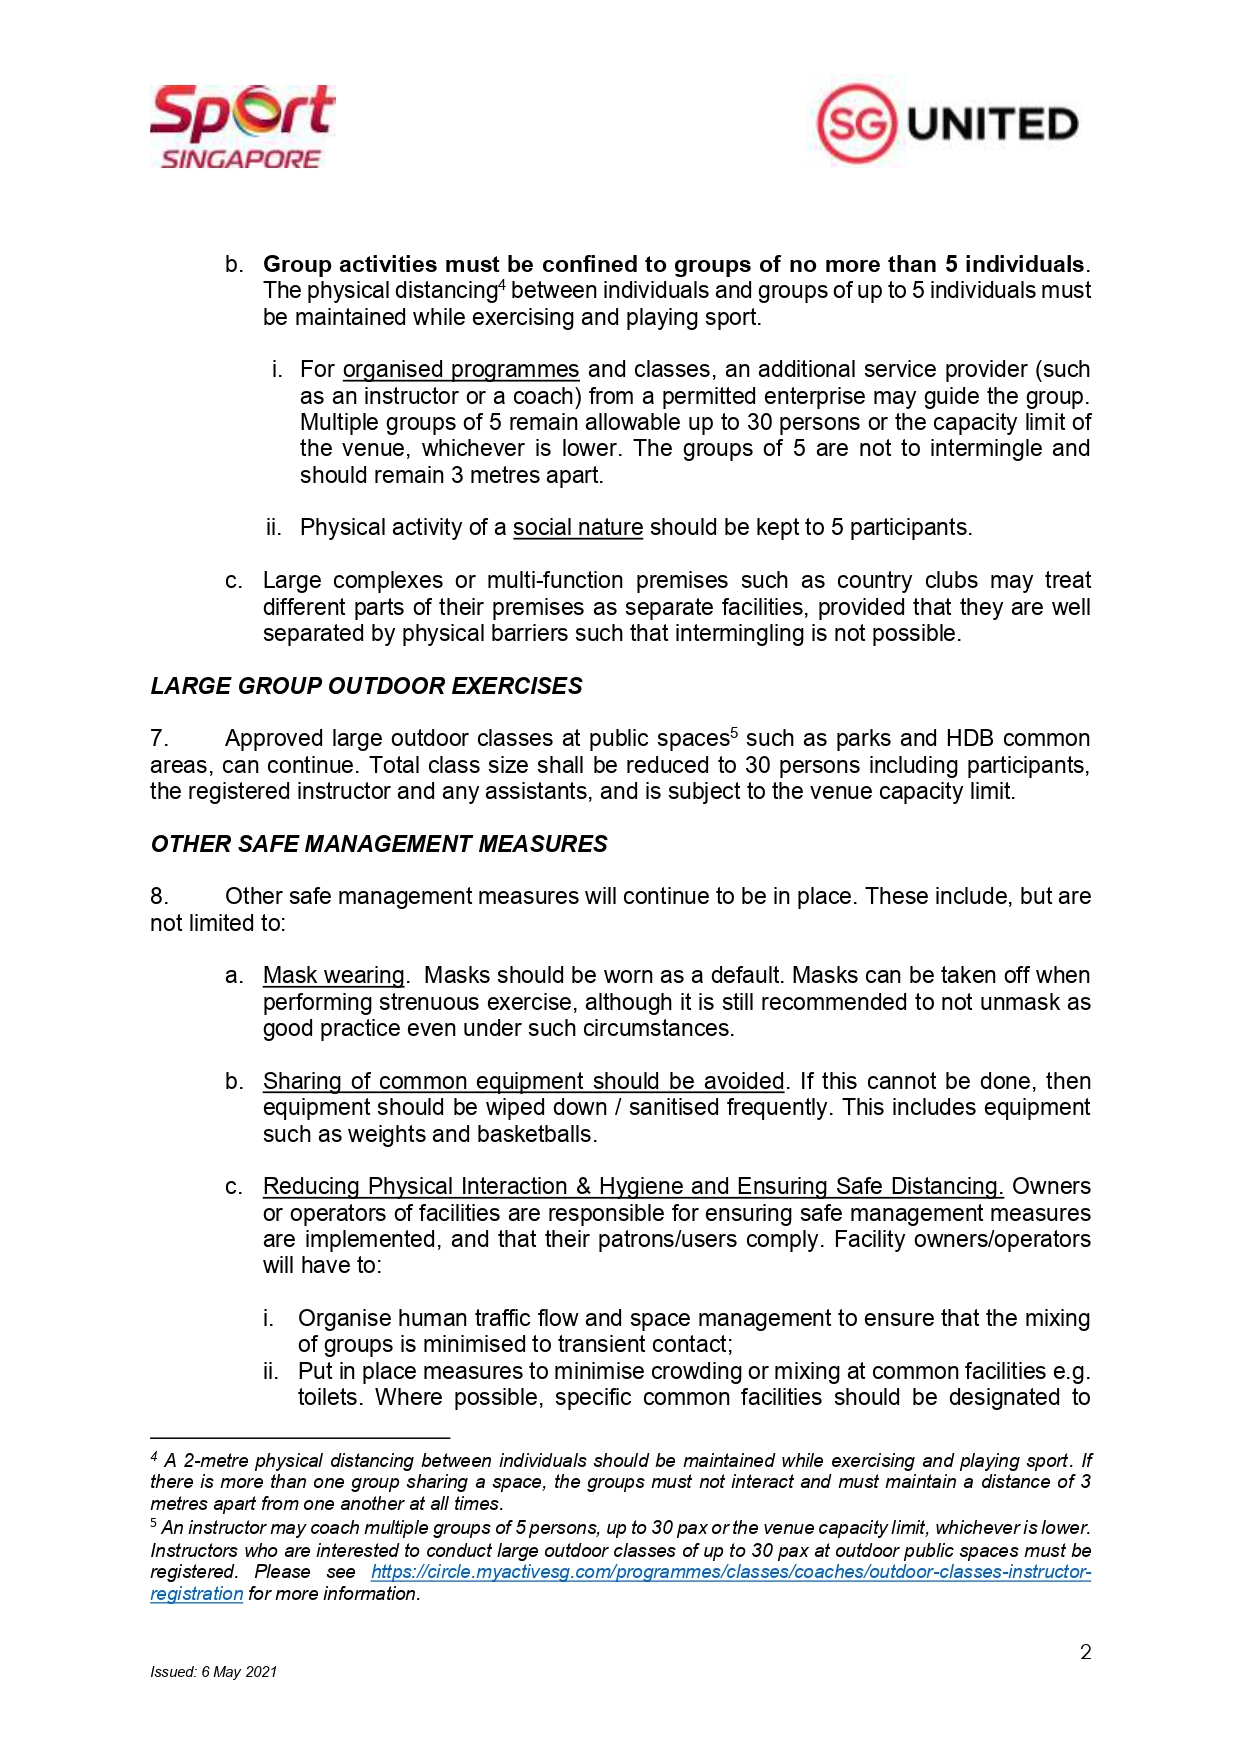 Stricter Safe Management Measures For Sport And Physical Exercise and Activity (8 to 30 May 2021)_pages-to-jpg-0002